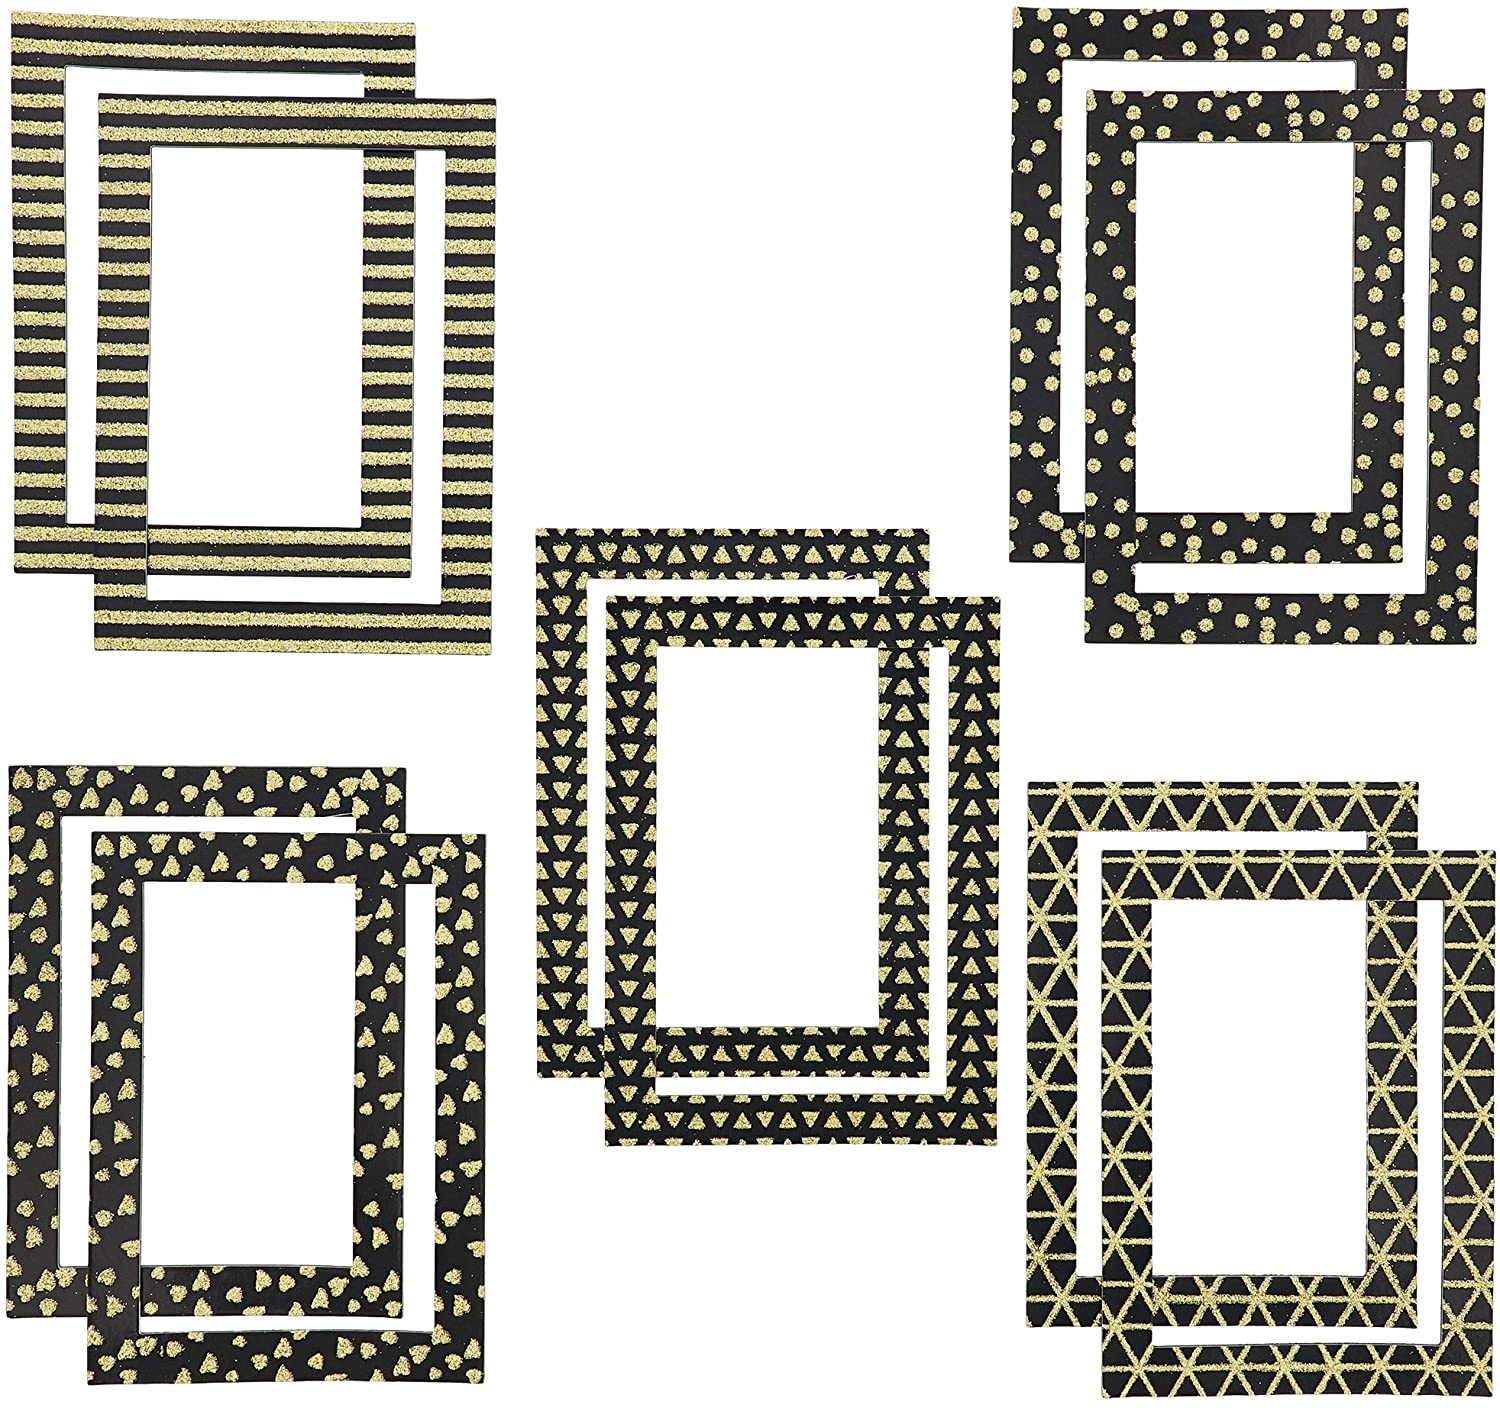 Paper Junkie Magnetic Picture Frame, Black with Gold Glitter (4 x 6 in, 10 Pack)